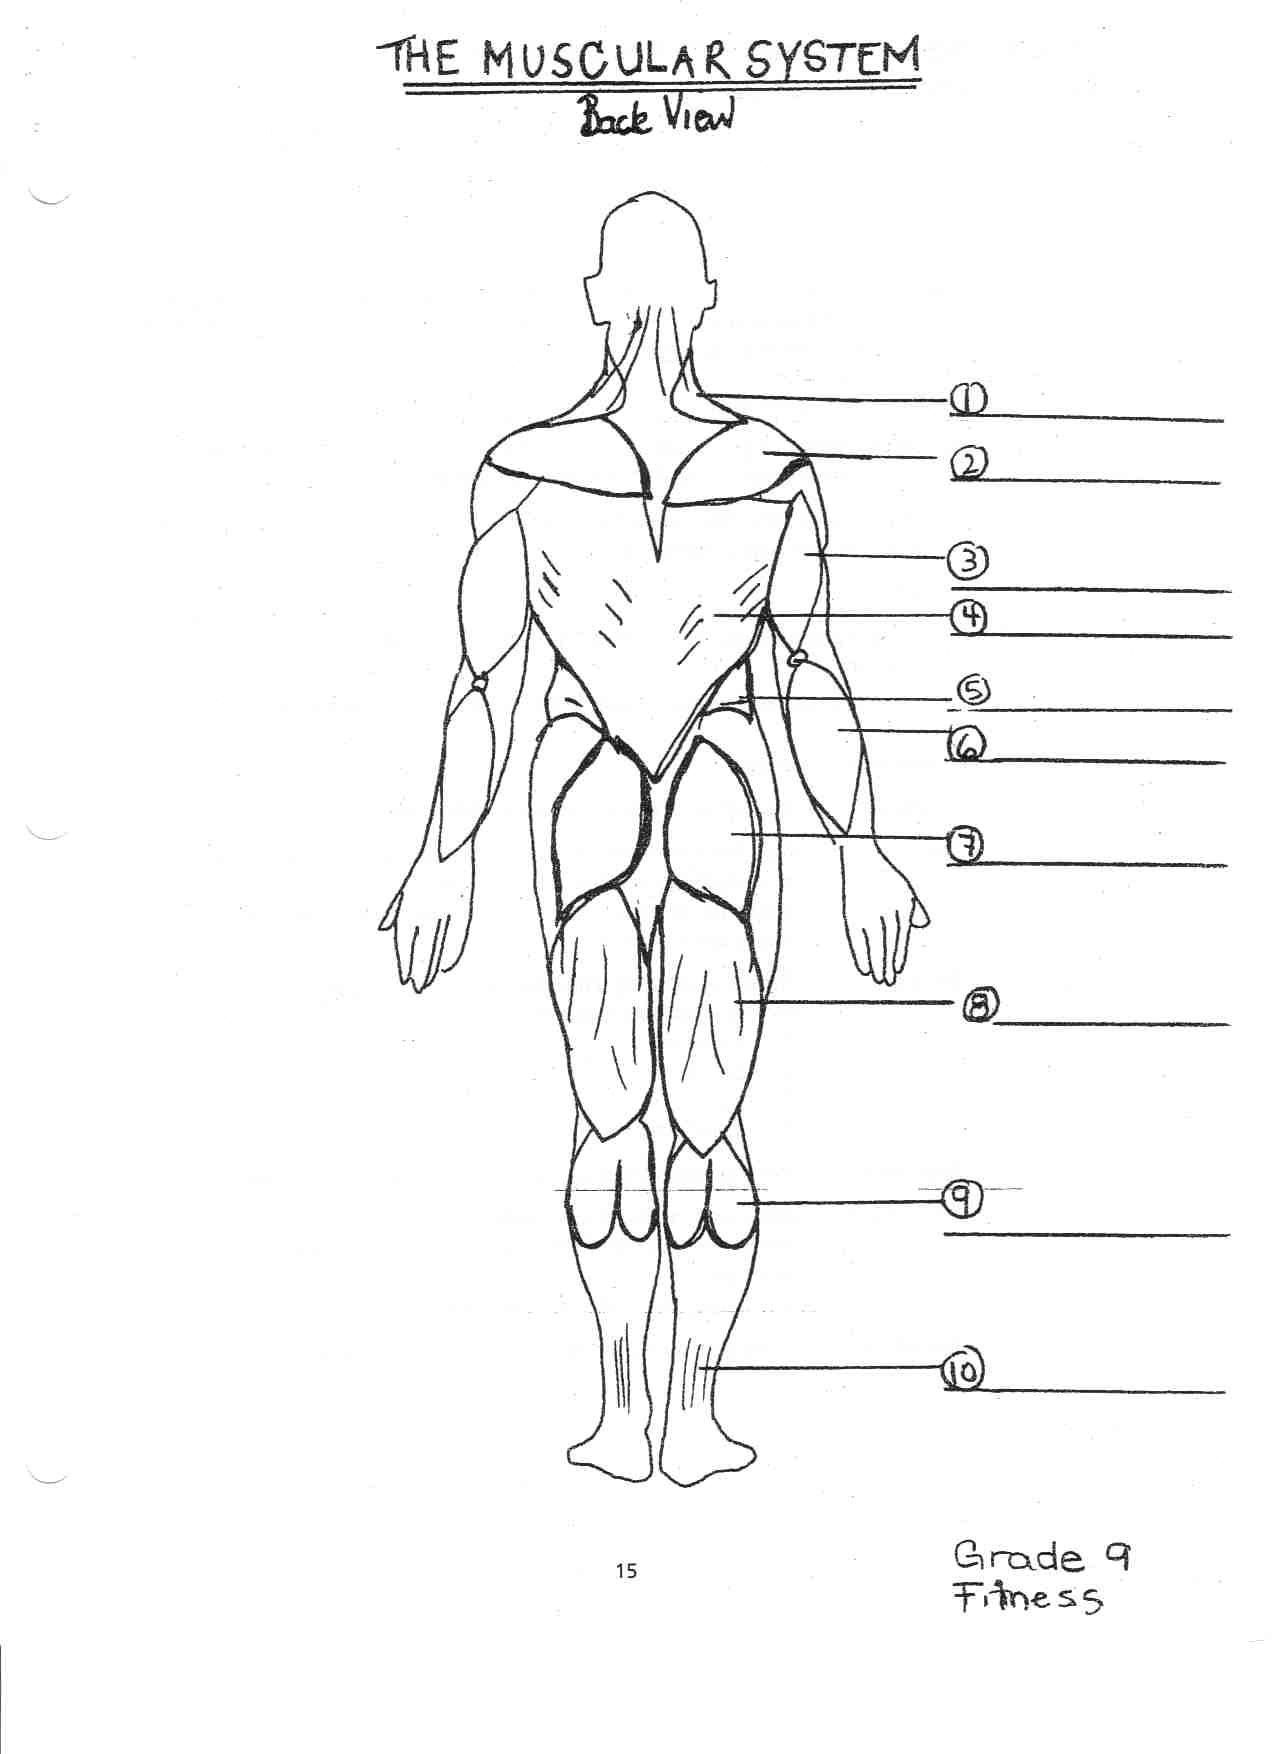 hight resolution of unlabeled muscular system diagram unlabeled muscular system diagram 40 fresh human anatomy muscular system body